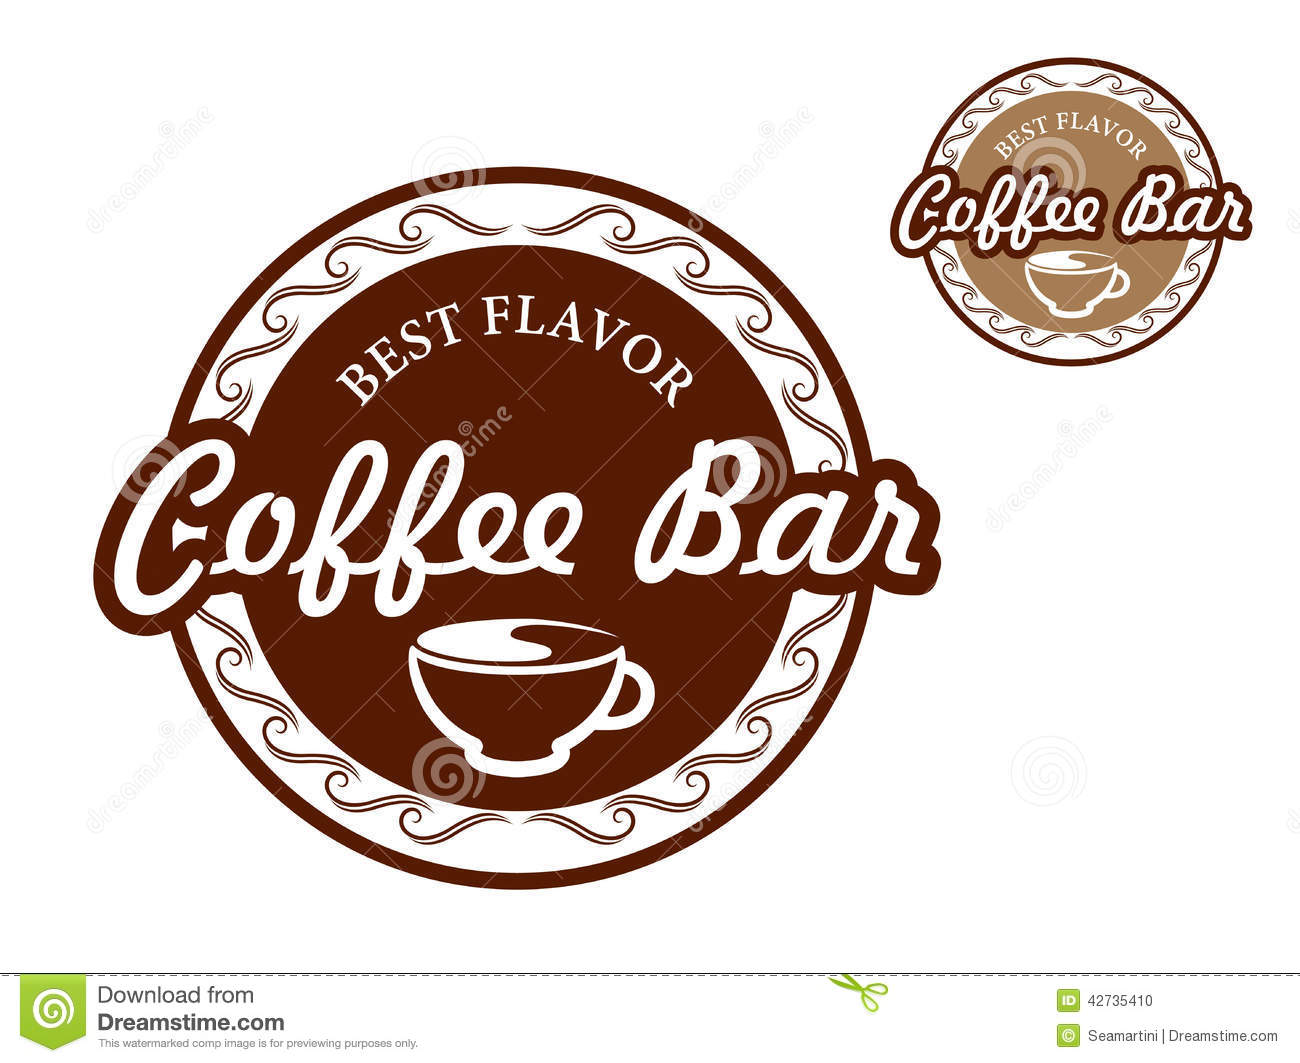 coffee bar signs stock vector - image: 42735410